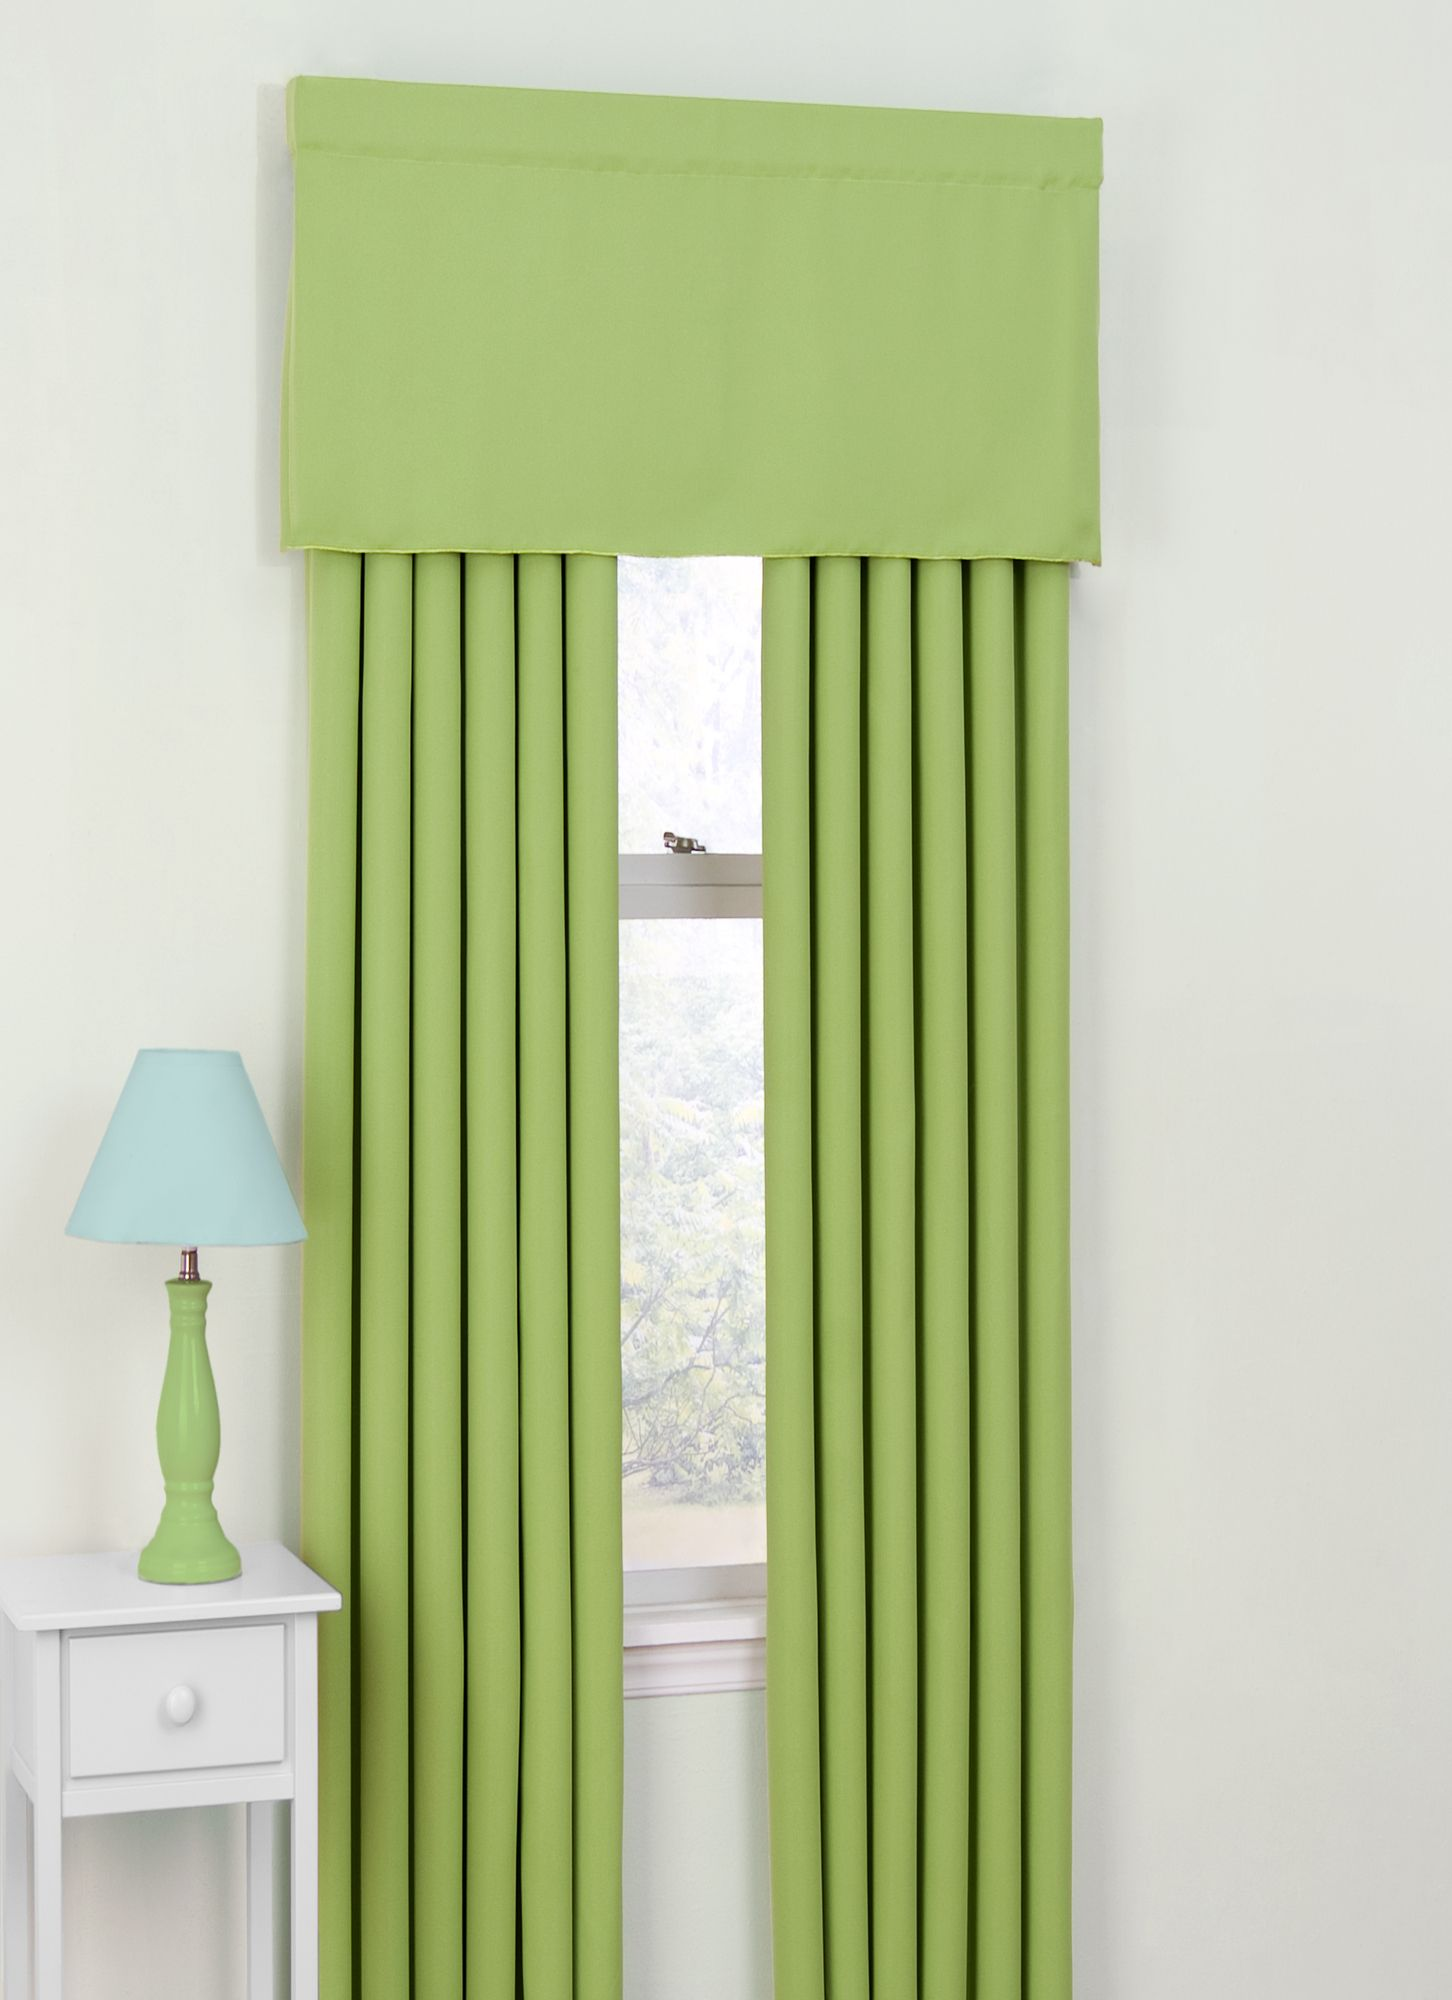 Eclipse Curtains Twill Kids Blackout Drapes And Valance Set In Lime Leah 39 S Room Ideas